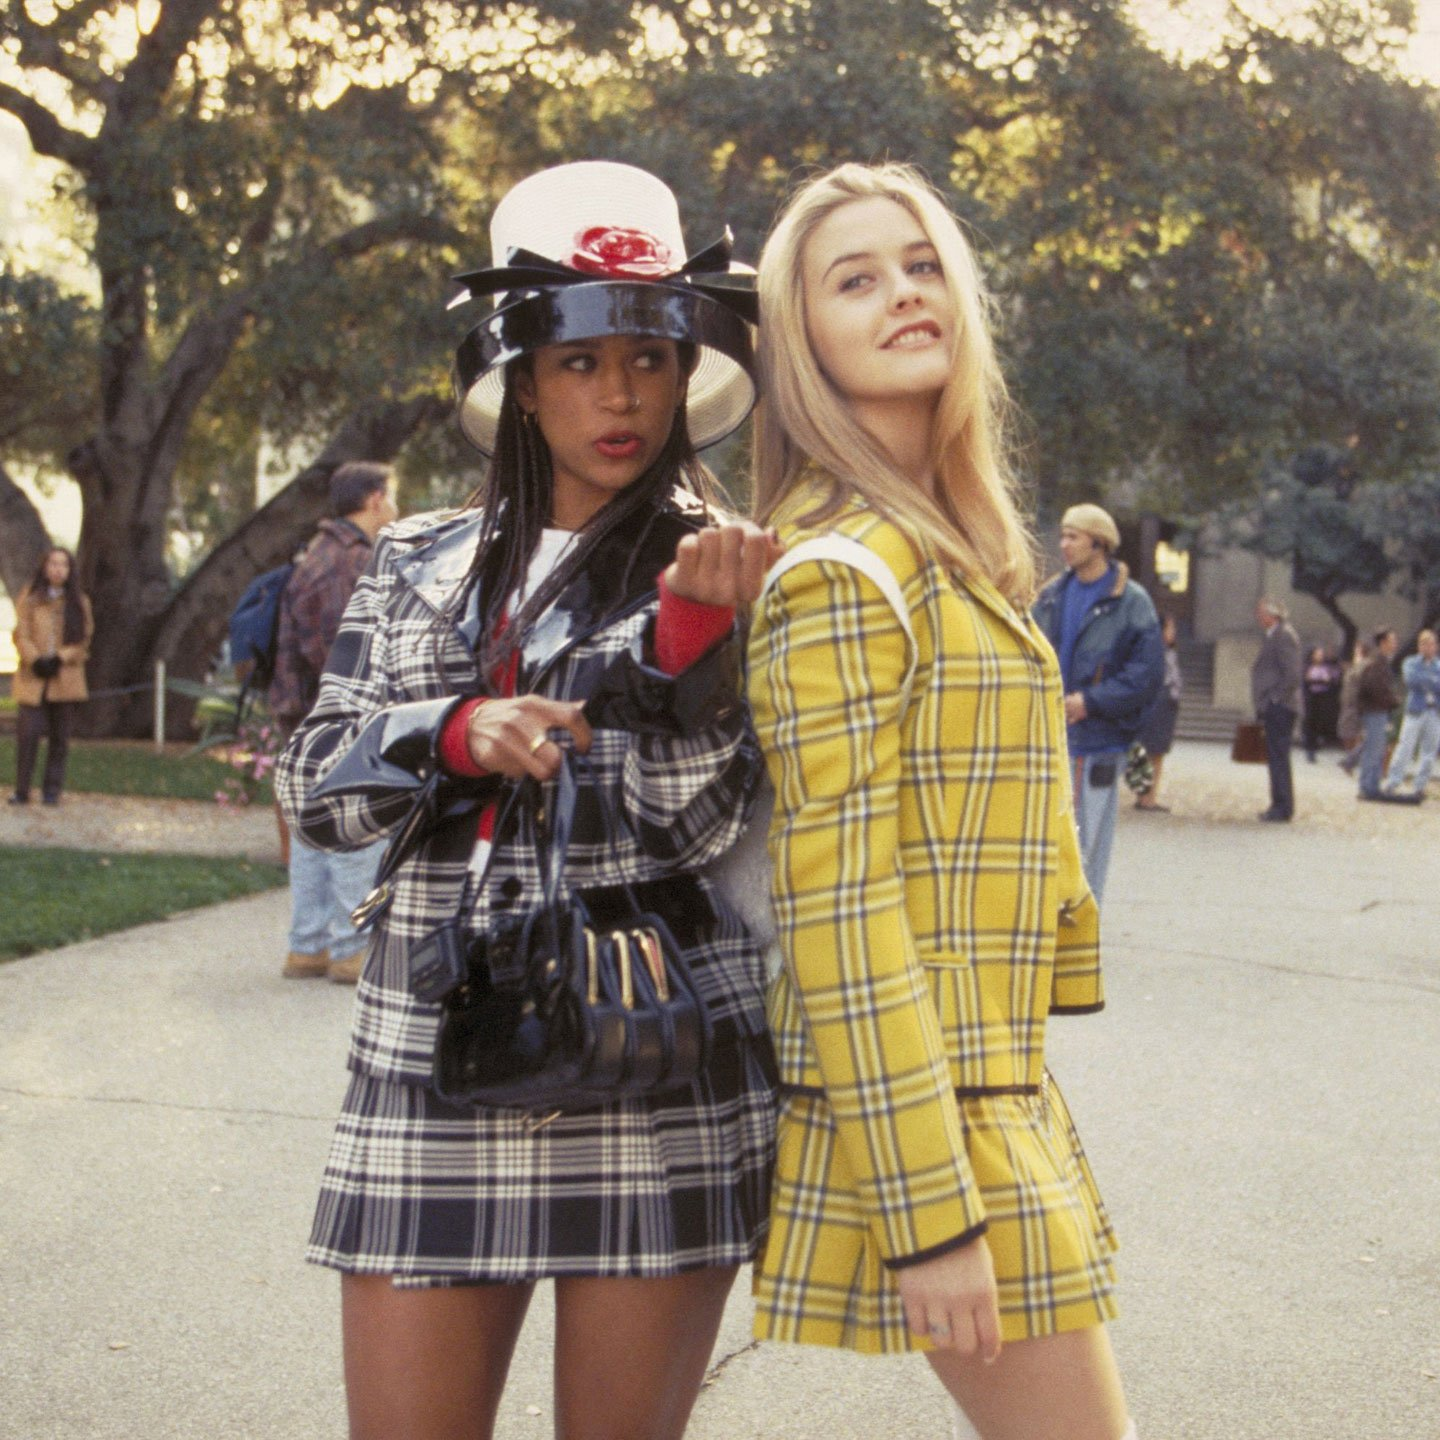 Alicia Silverstone and Stacy Dash as Cher and Dione from Clueless